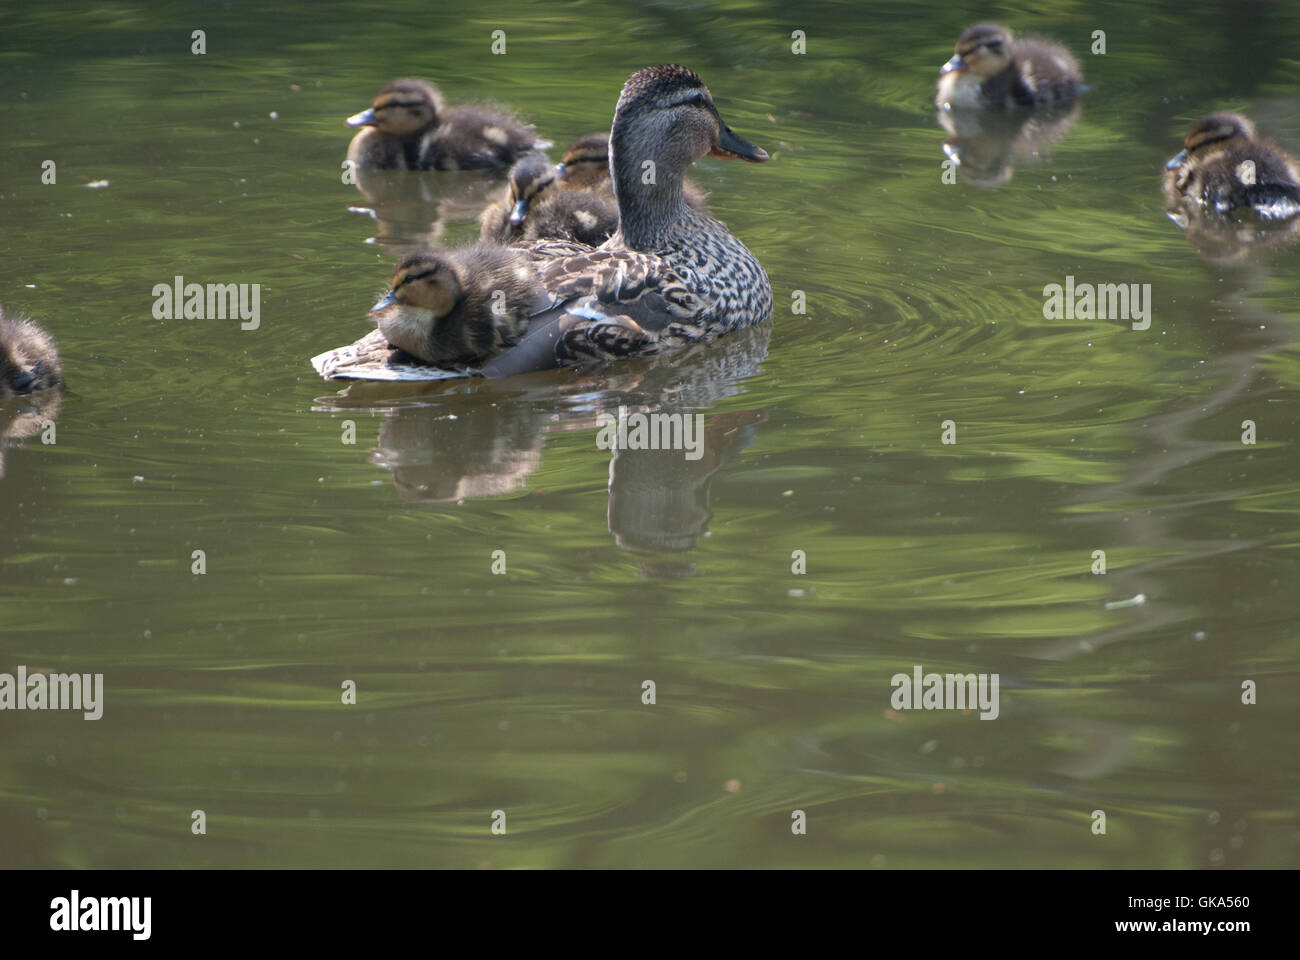 Ducks on Lymm Canal - Stock Image